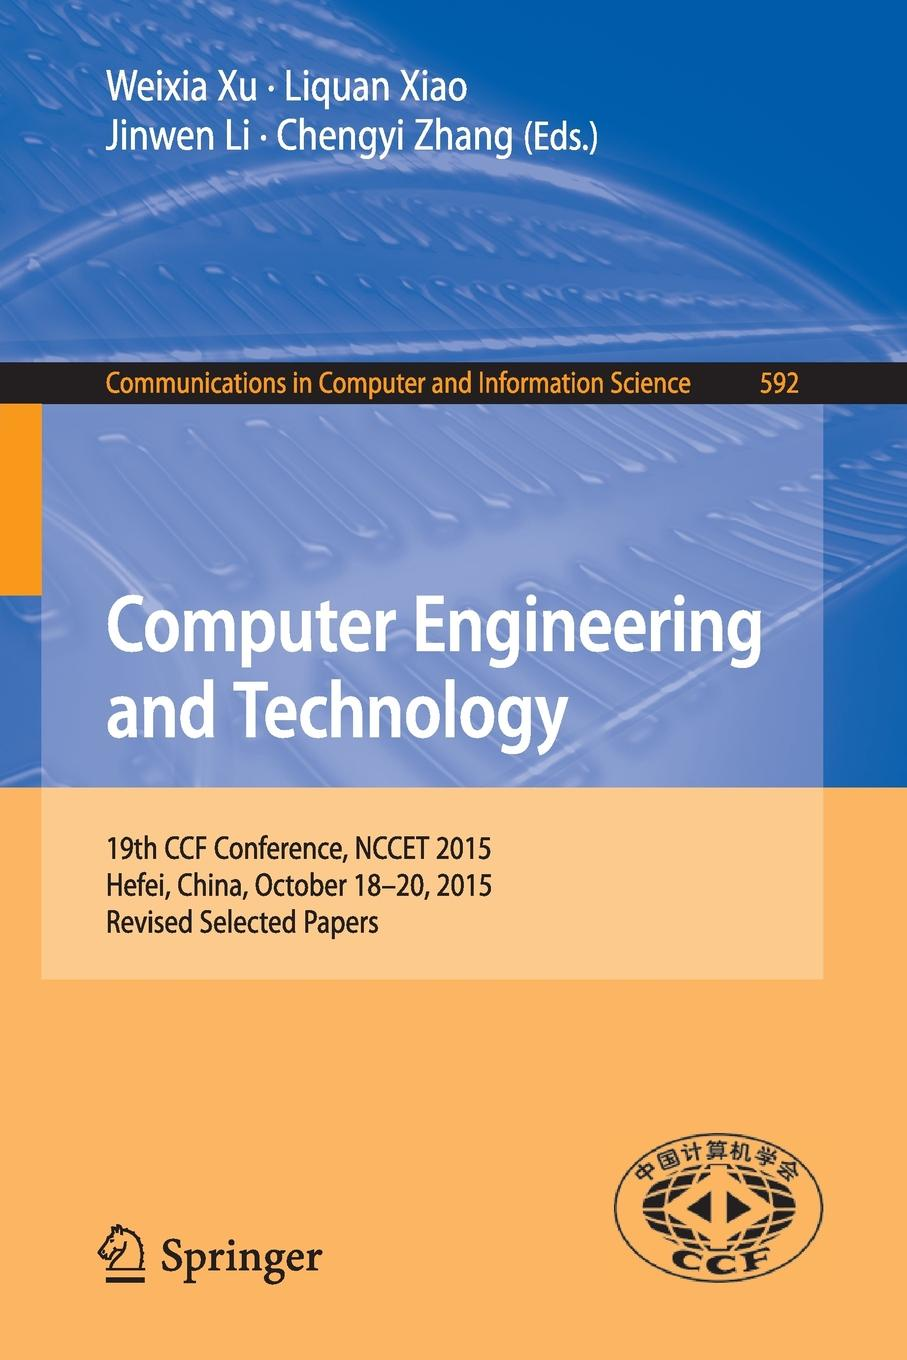 Computer Engineering and Technology. 19th CCF Conference, NCCET 2015, Hefei, China, October 18-20, 2015, Revised Selected Papers hefei dayu fitness db182